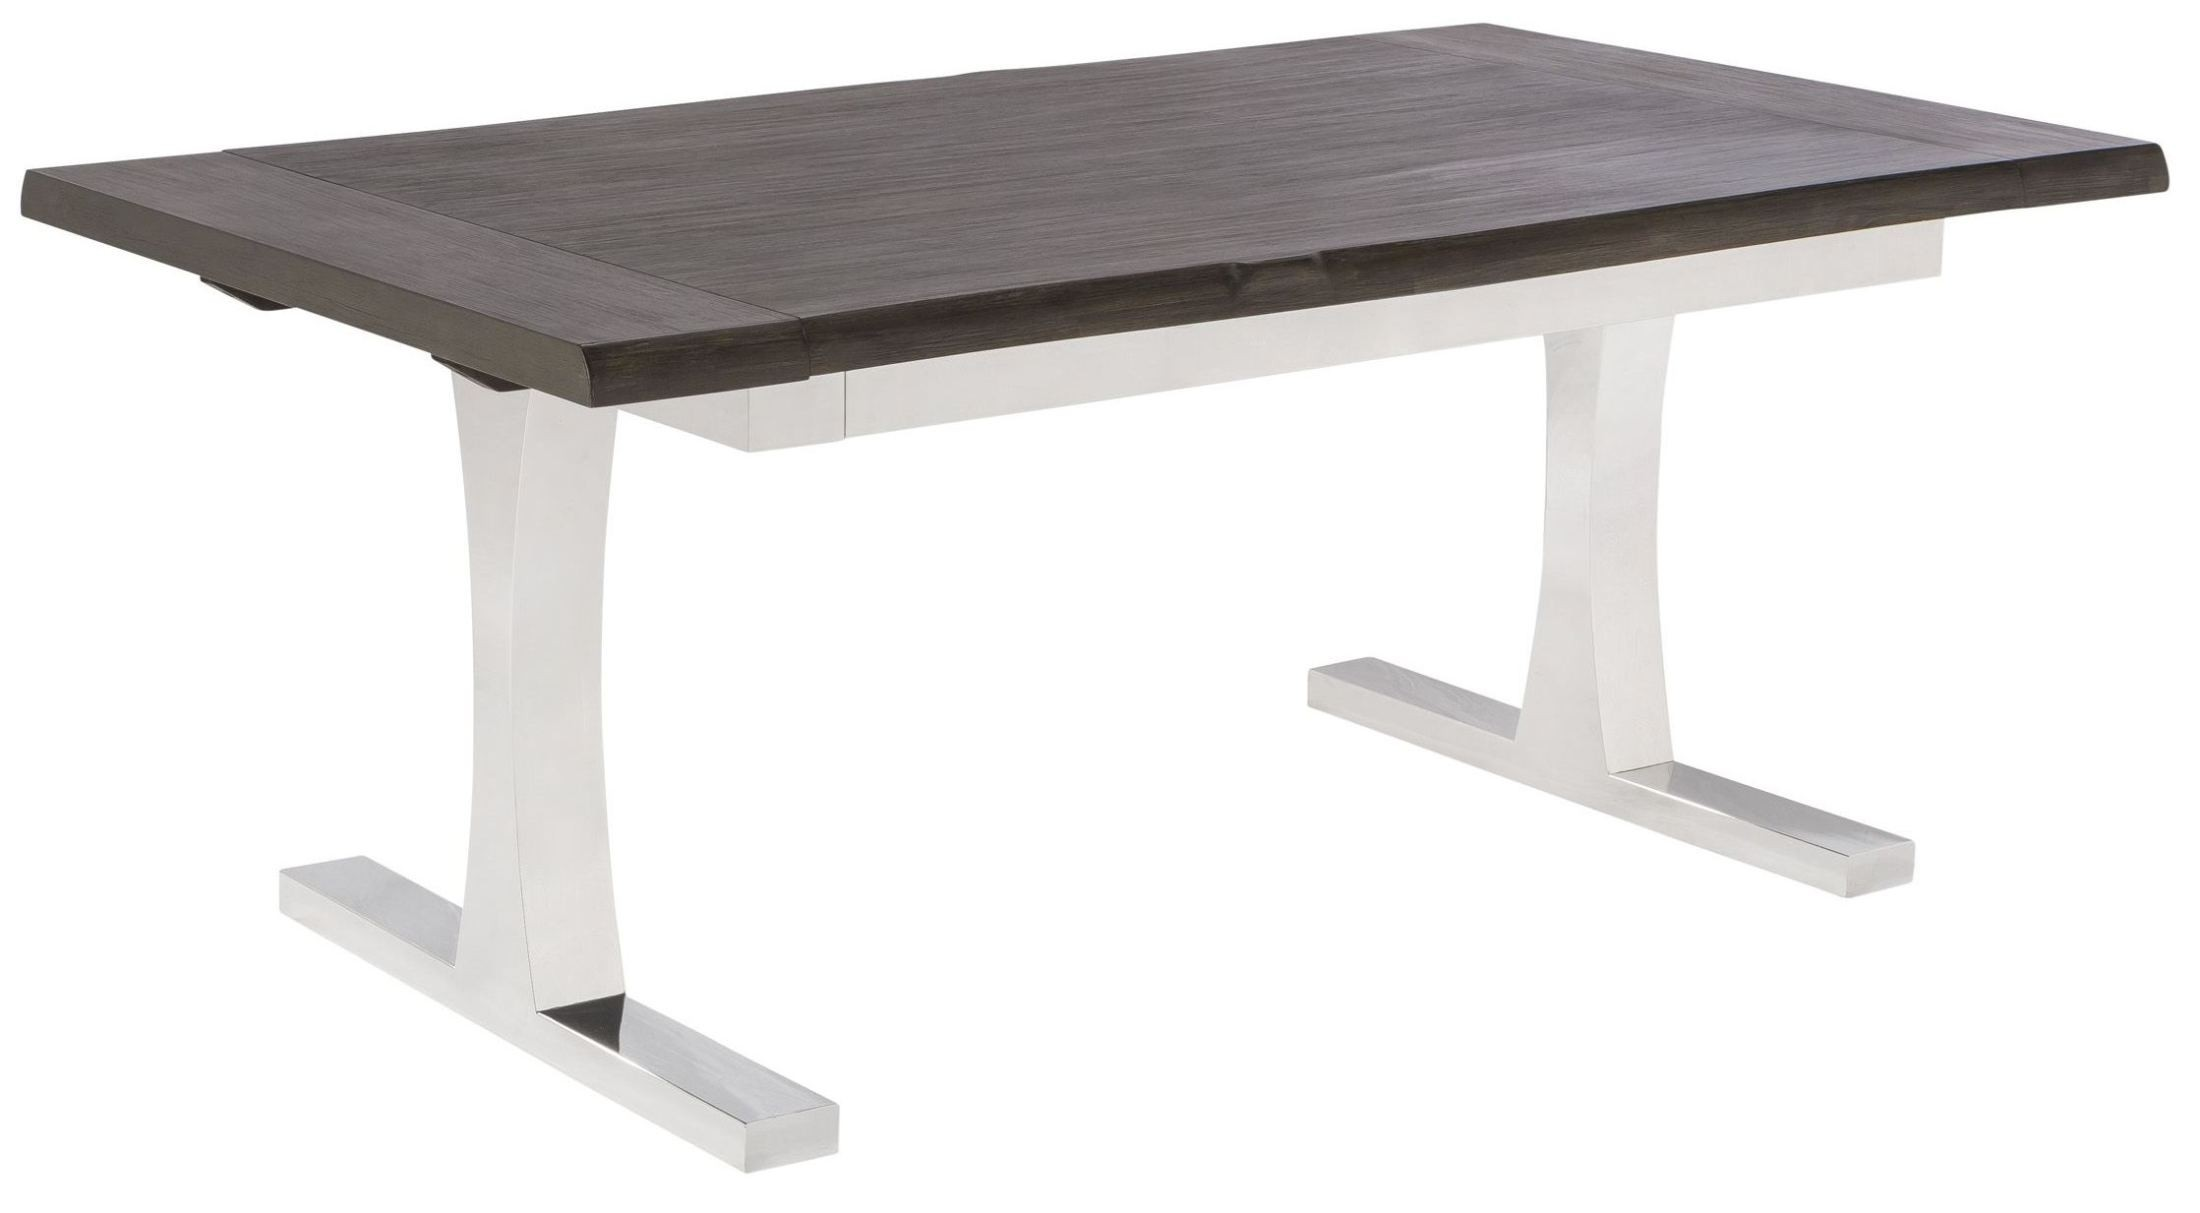 Marquez Extendable Rectangular Dining Table From Sunpan